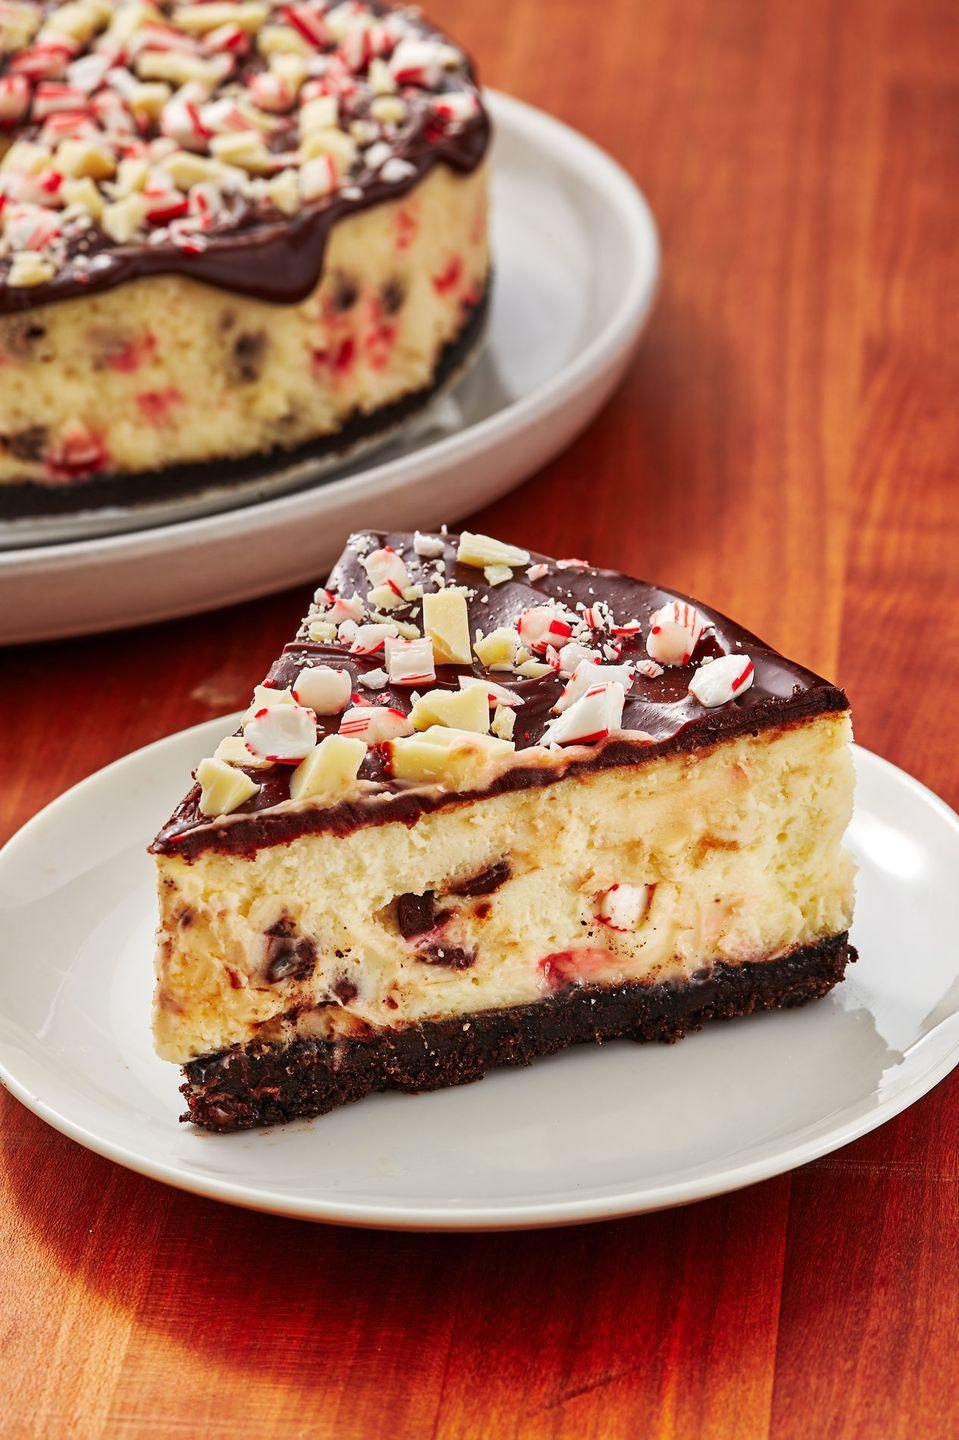 """<p>All we want for Christmas is cheesecake.</p><p>Get the recipe from <a href=""""https://www.delish.com/cooking/recipe-ideas/recipes/a50775/chocolate-peppermint-cheesecake-recipe/"""" rel=""""nofollow noopener"""" target=""""_blank"""" data-ylk=""""slk:Delish"""" class=""""link rapid-noclick-resp"""">Delish</a>. </p>"""